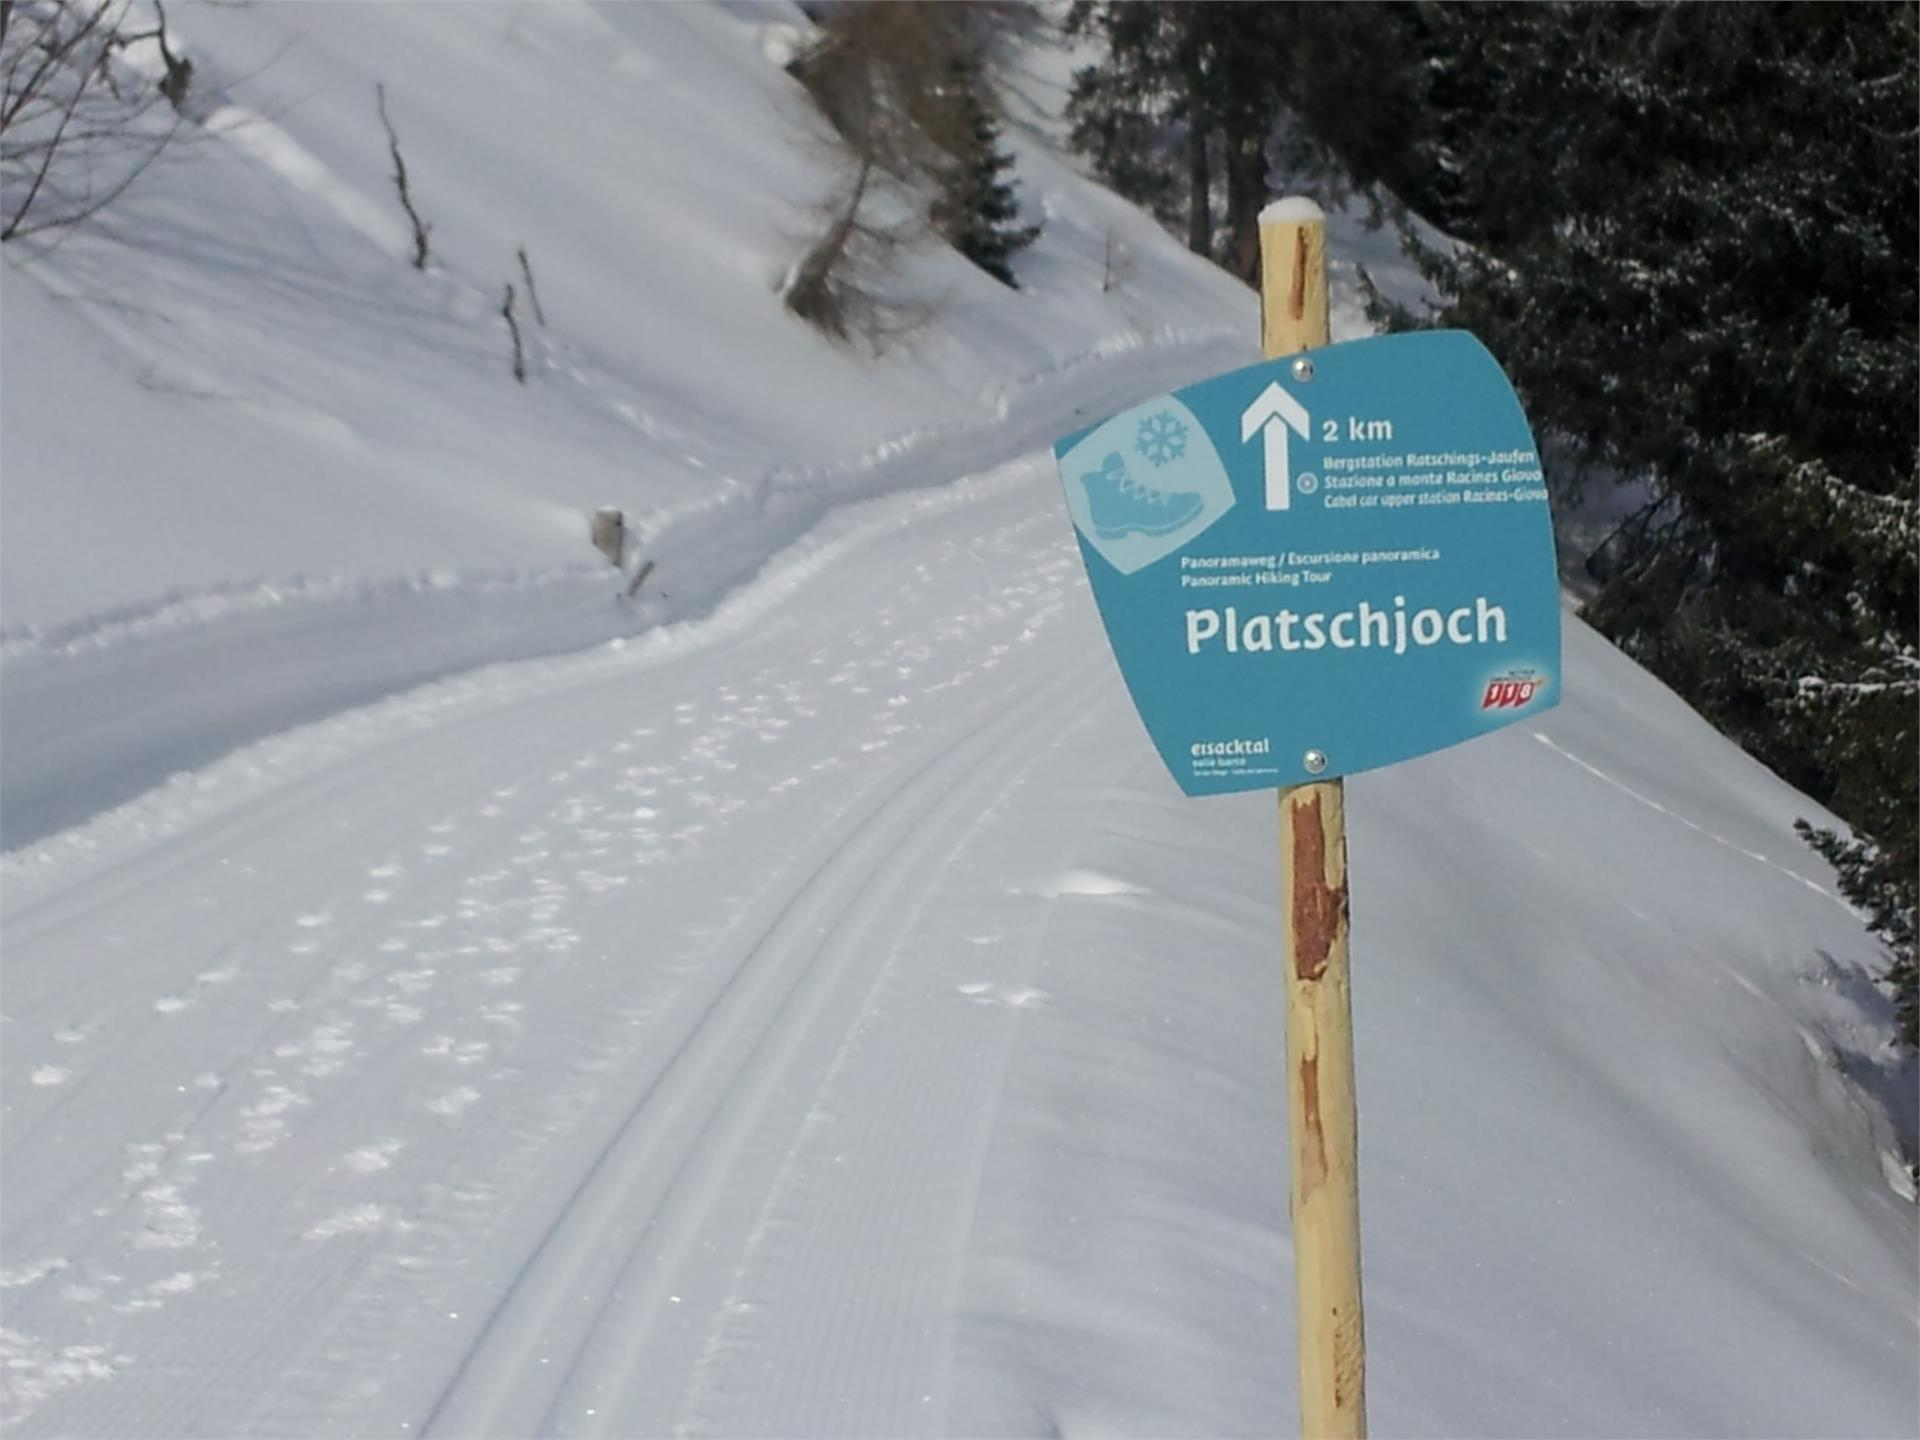 Platschjoch high-altitude slope